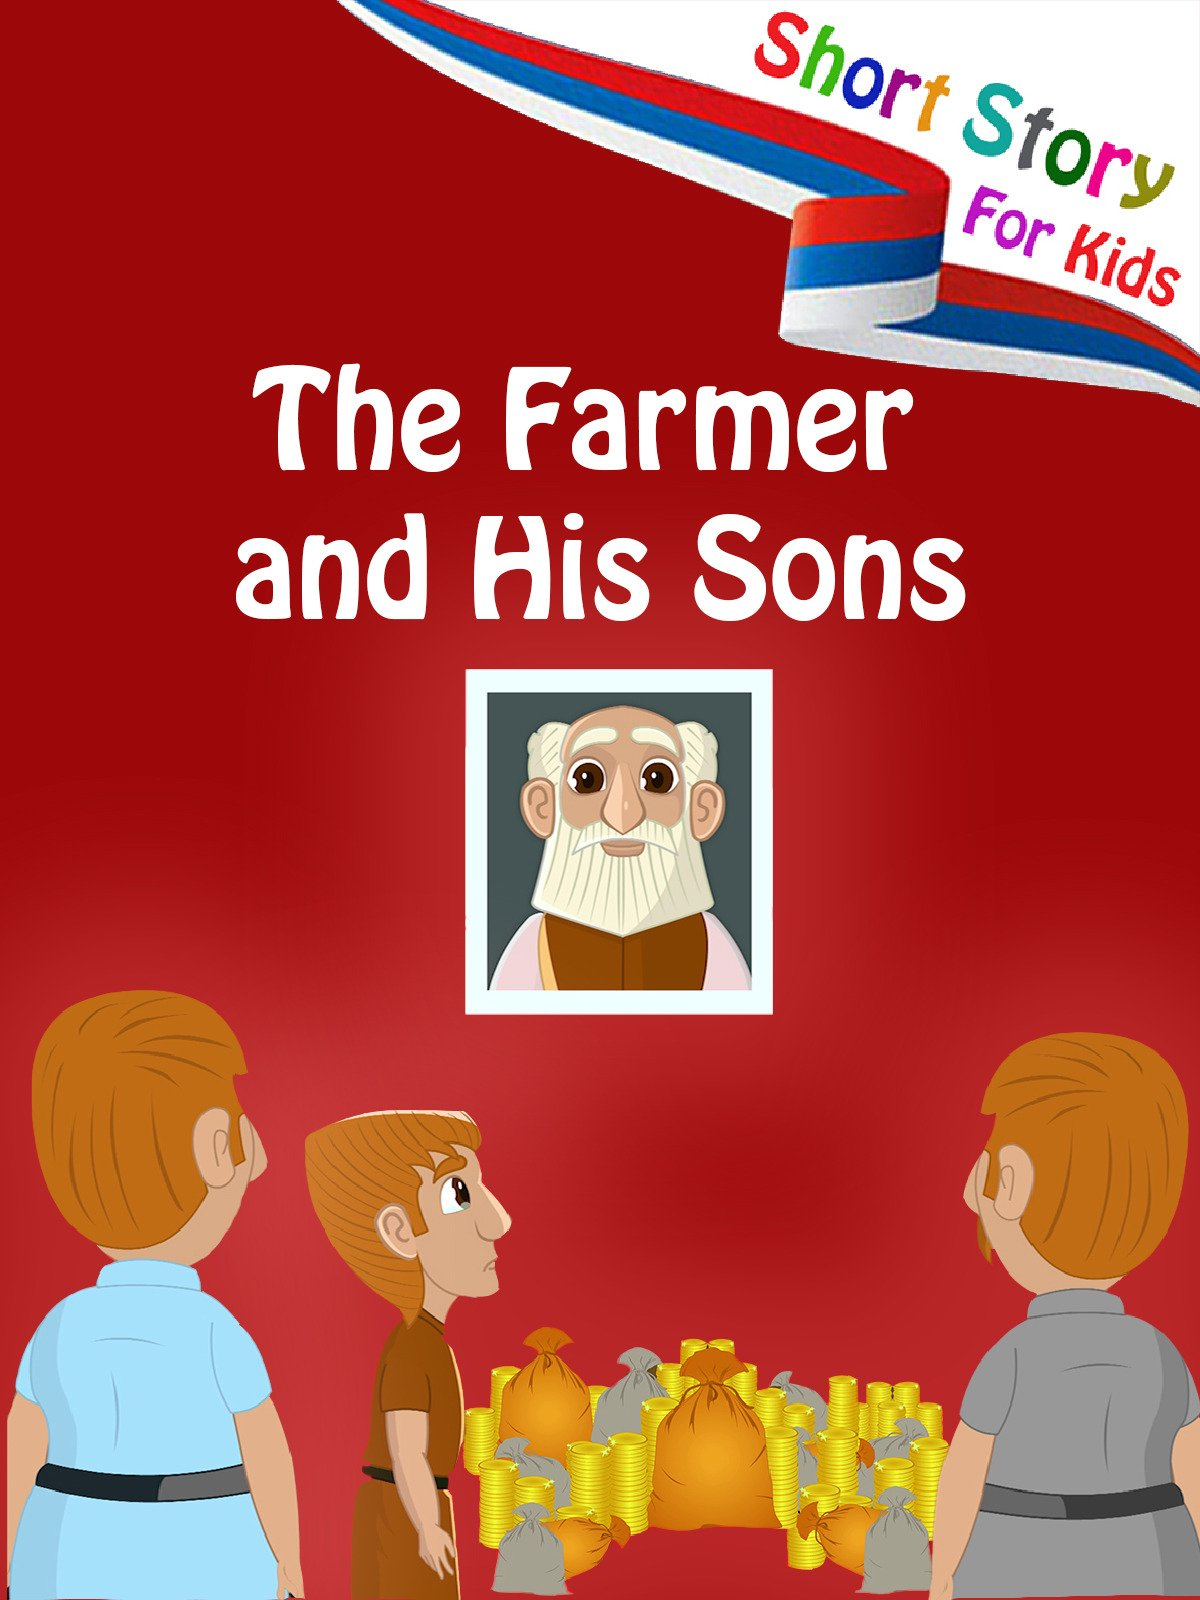 Amazon com: Watch Short Stories for Kids - The Farmer And